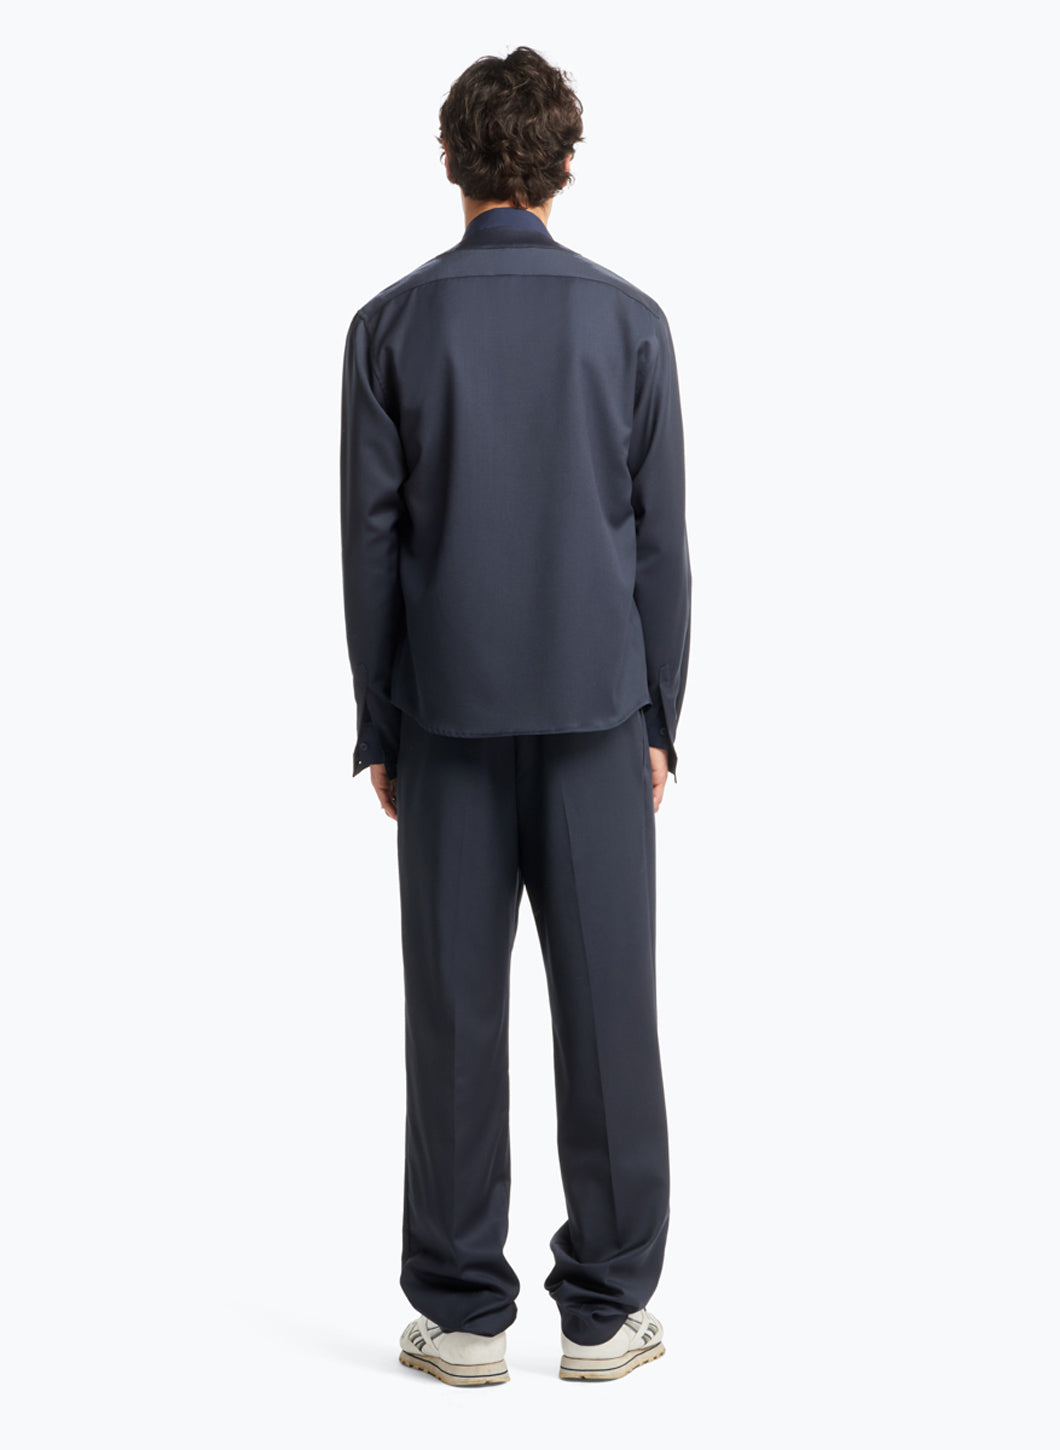 Overshirt with Crossed Crew Neck in Navy Blue Cool Wool